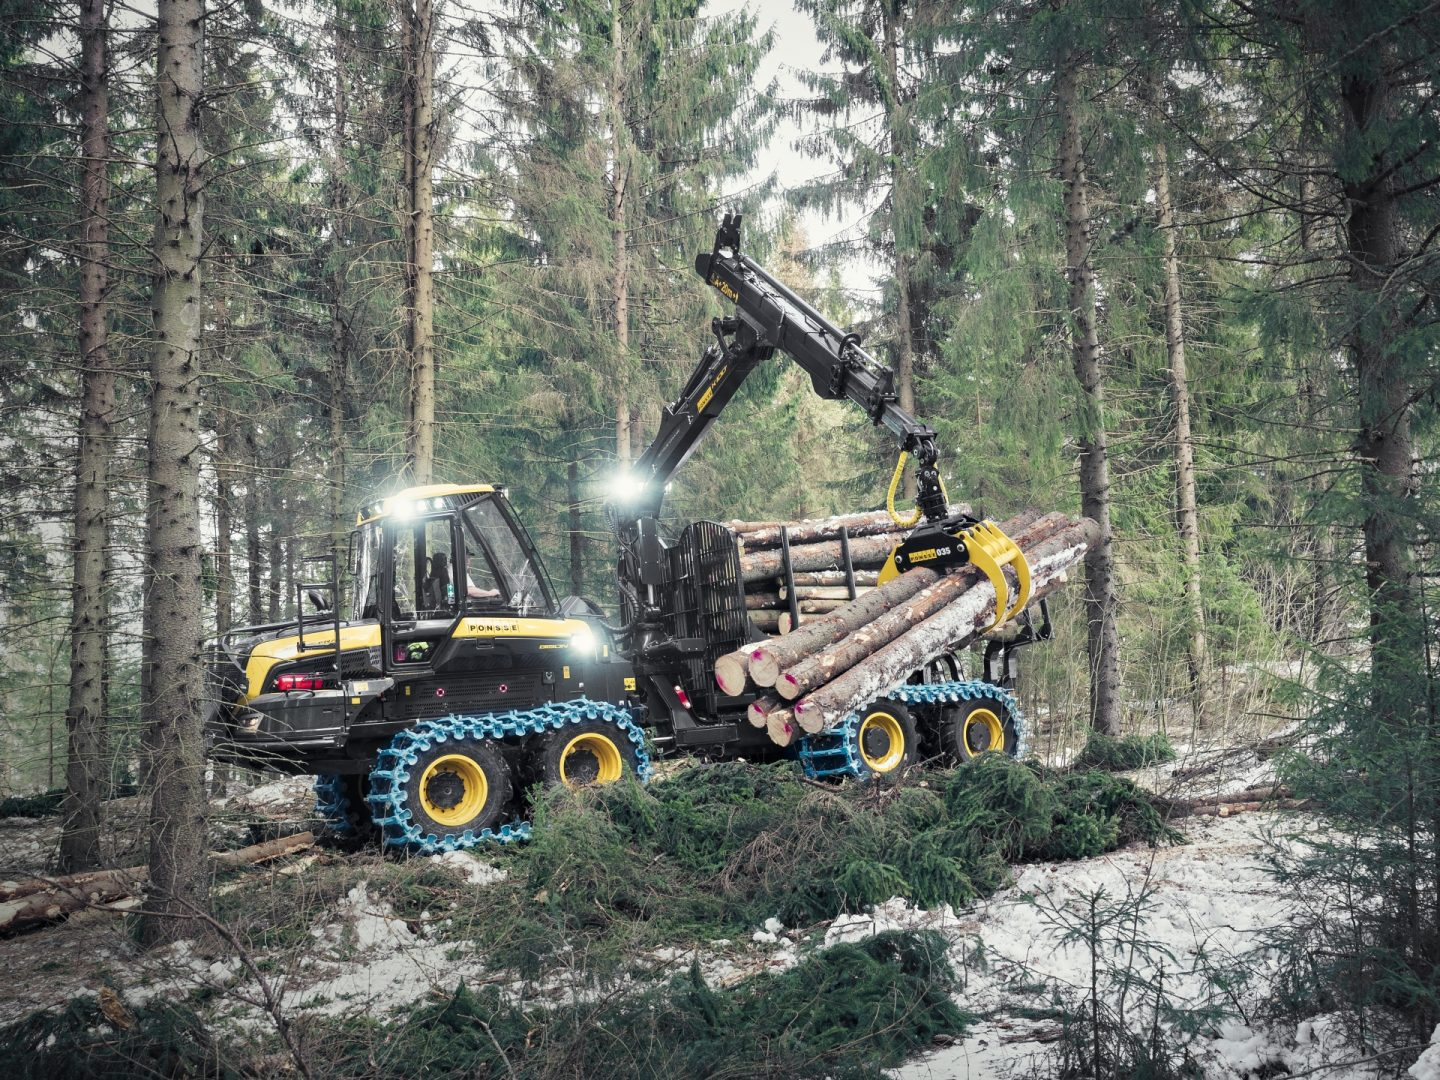 Record sales of forwarders in Sweden 2020*